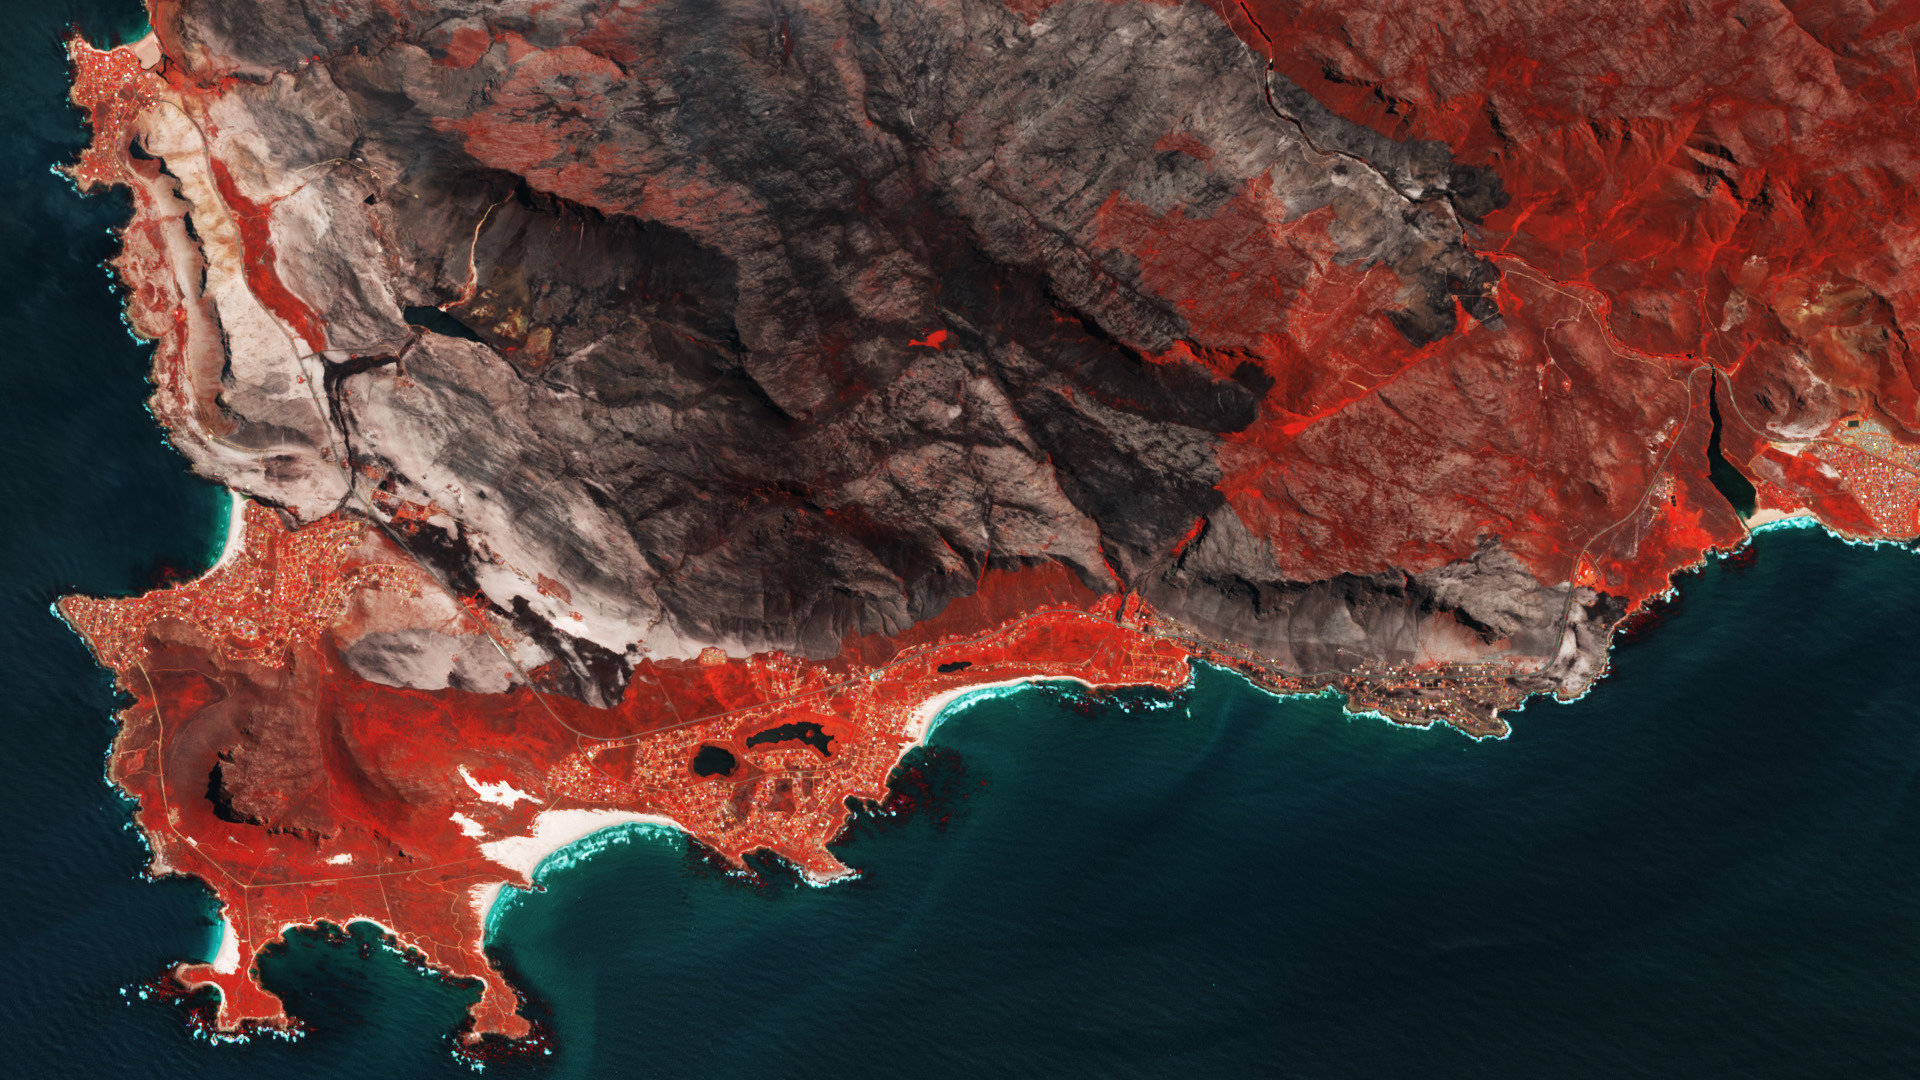 More of Africa scarred by fires than thought / Sentinel 2